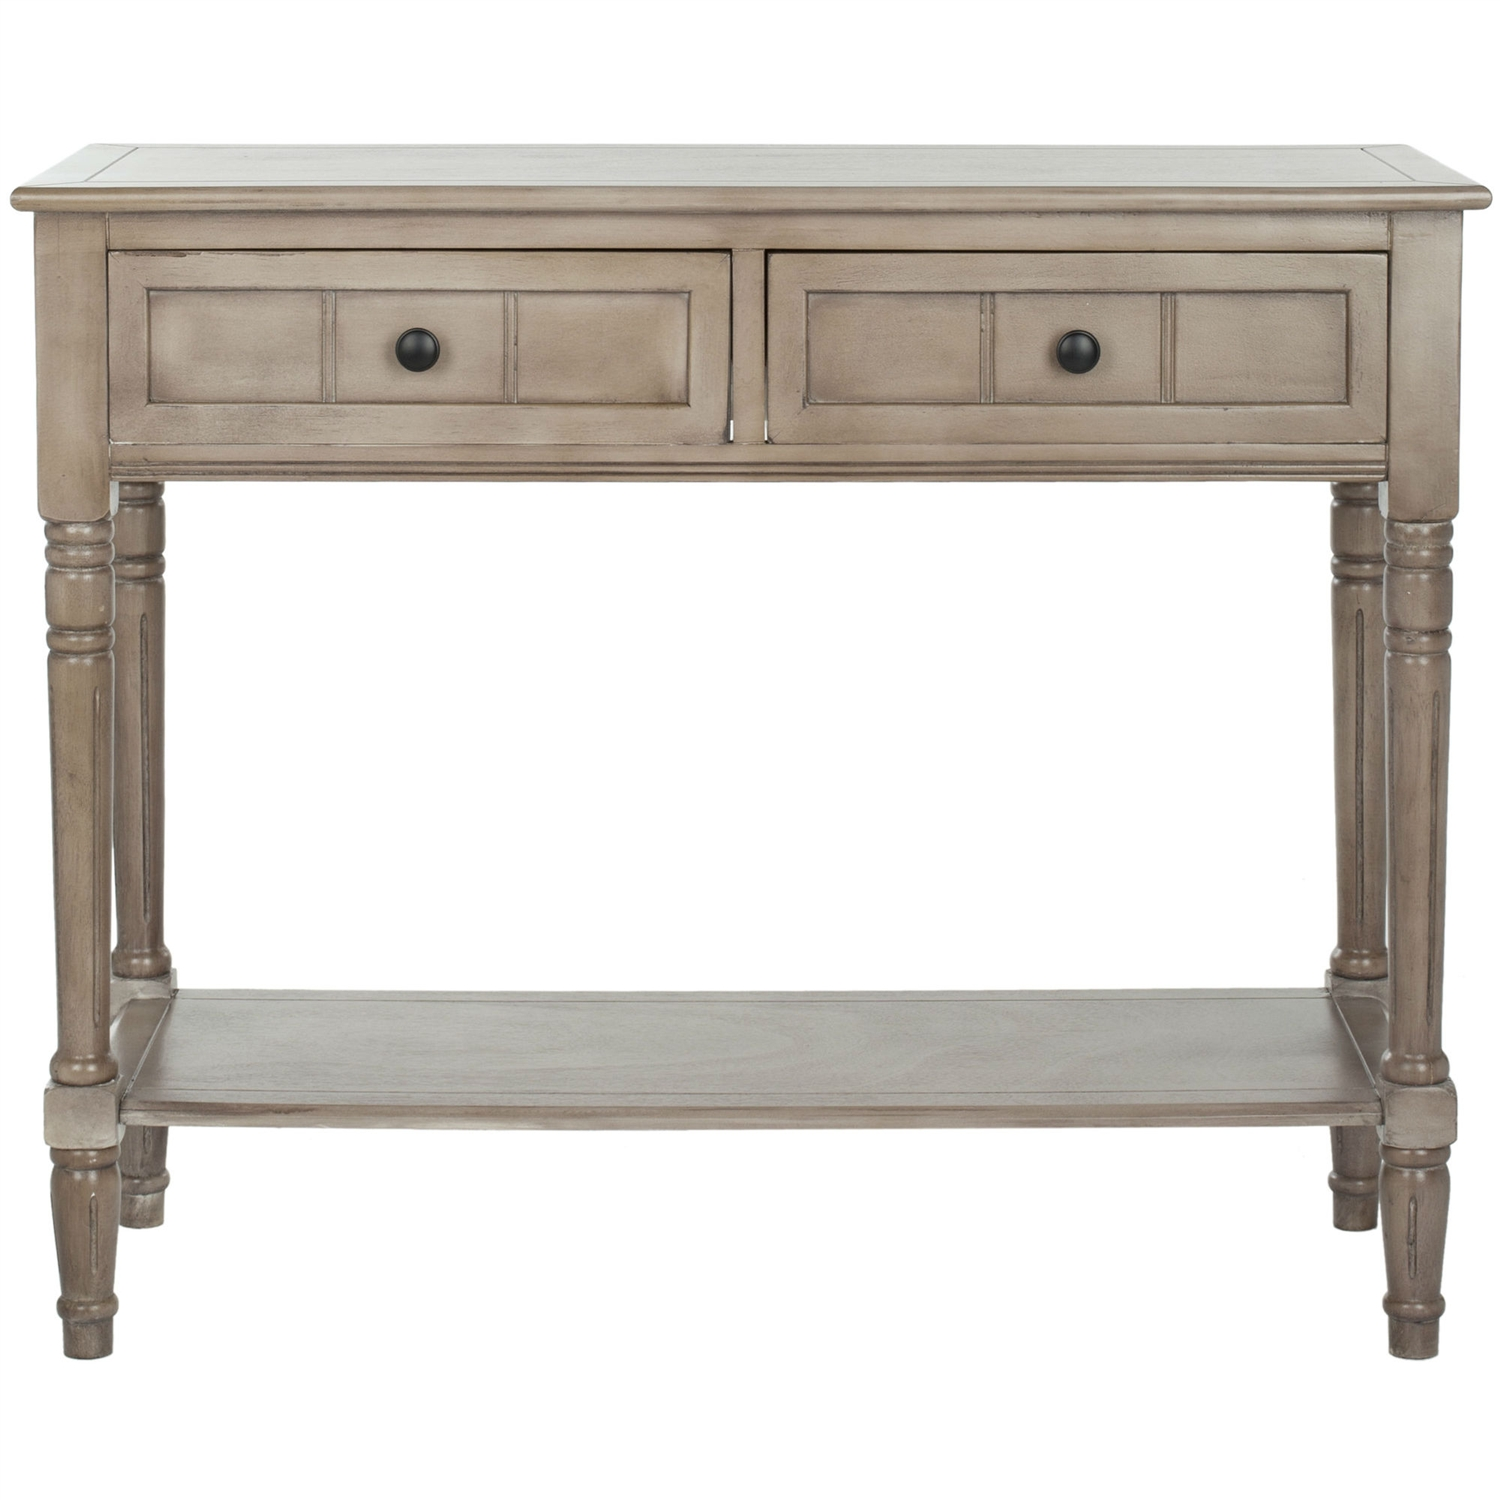 Console accent table traditional style sofa table in distressed console accent table traditional style sofa table in distressed cream geotapseo Images